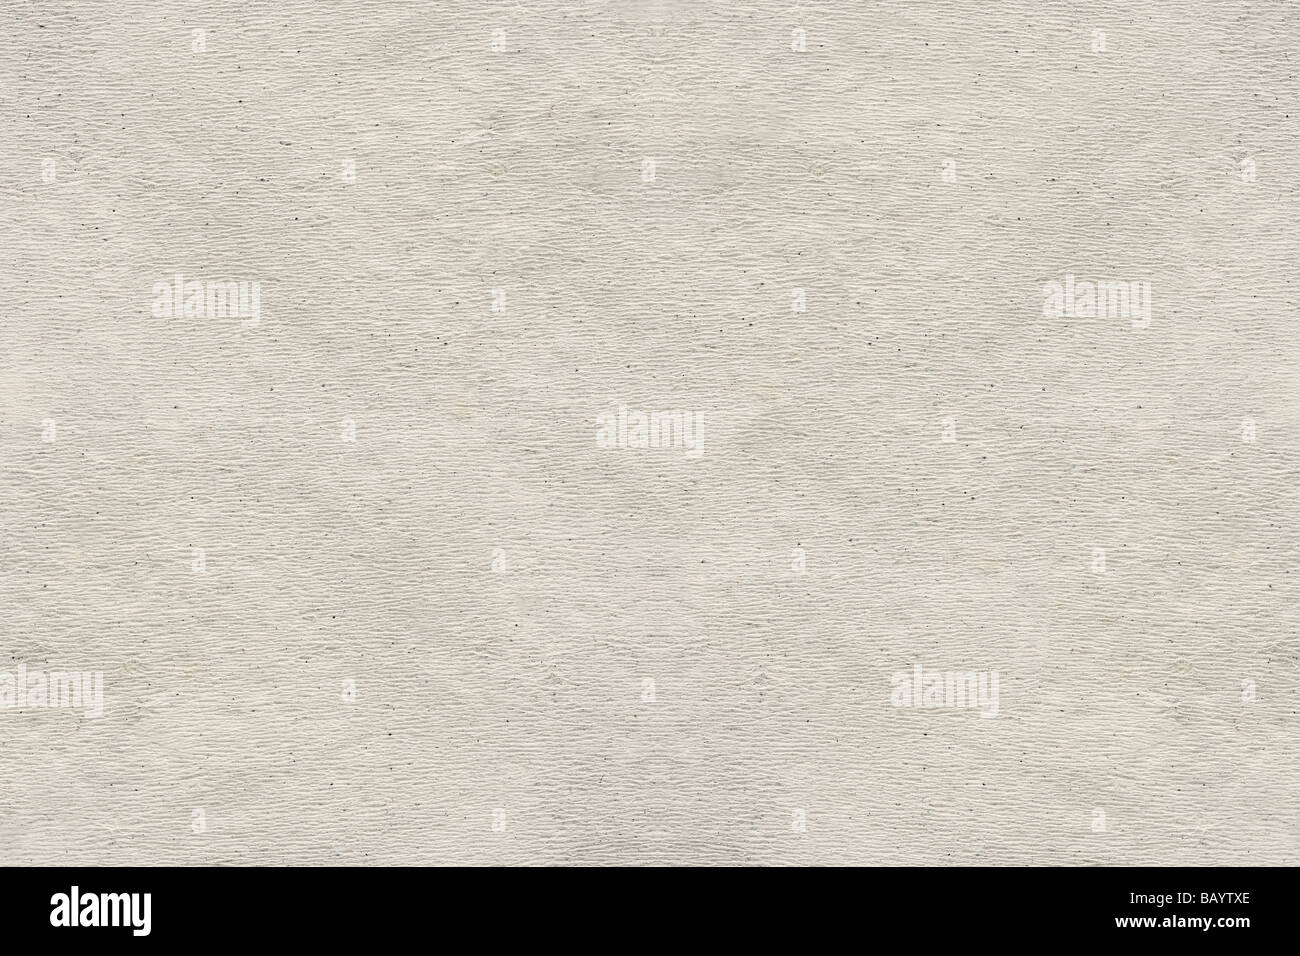 Goffered recycled paper texture. - Stock Image